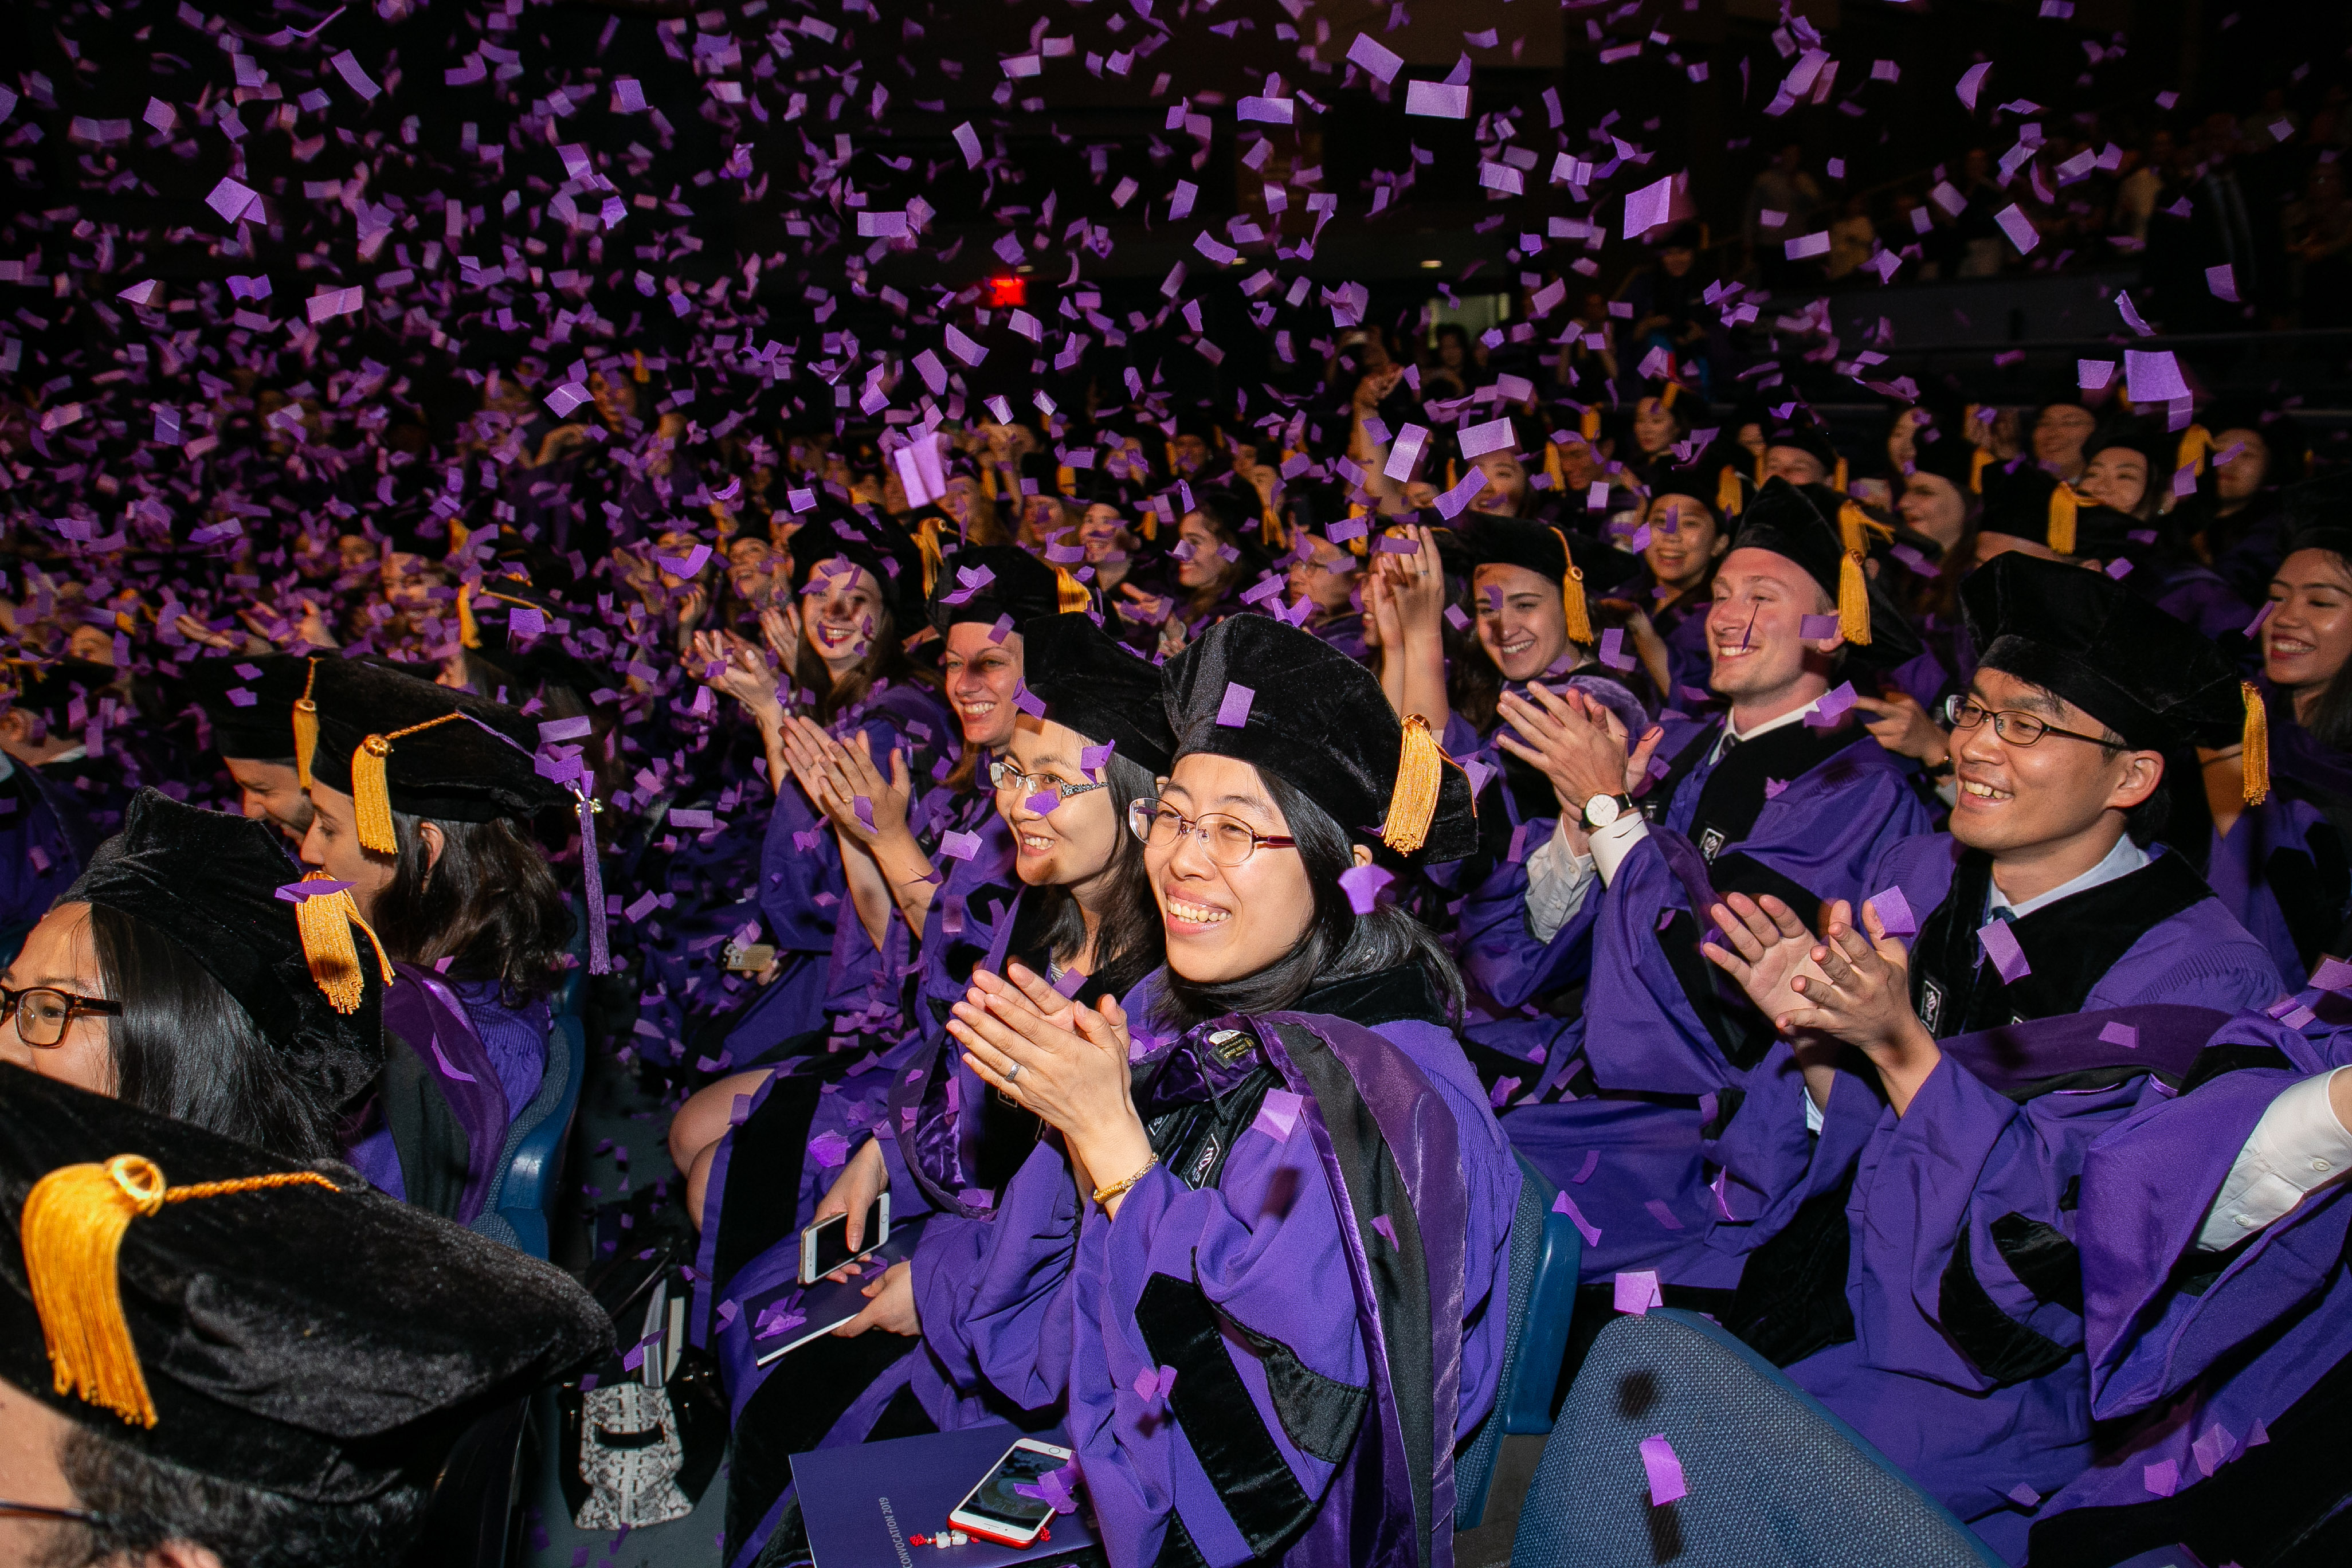 Montclair State University Graduation 2020.Nyu Law Graduation 2020 Nyu School Of Law